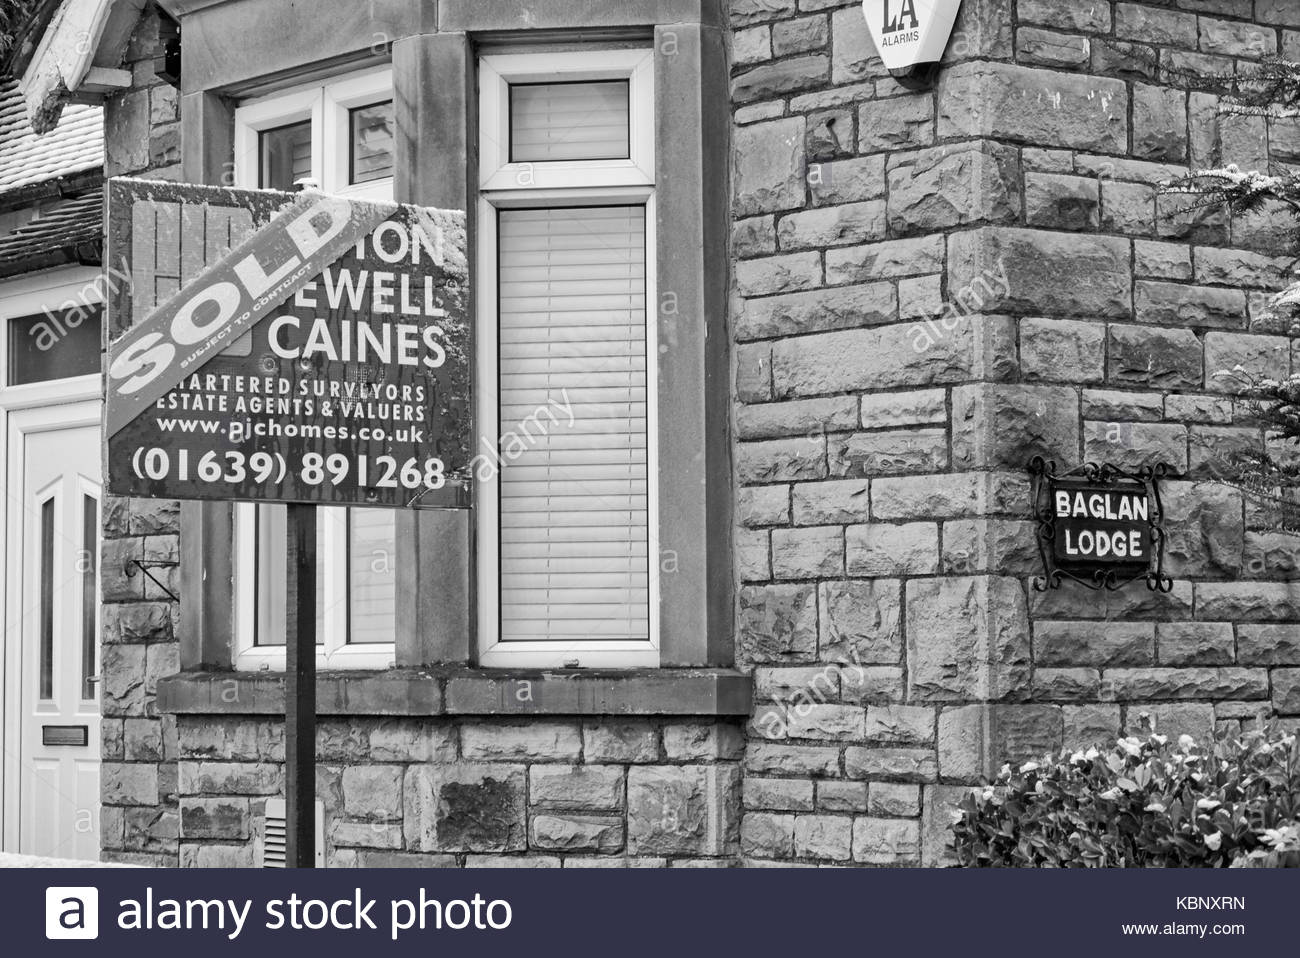 Baglan lodge stone cottage that has been sold near port talbot in south wales uk - Stock Image